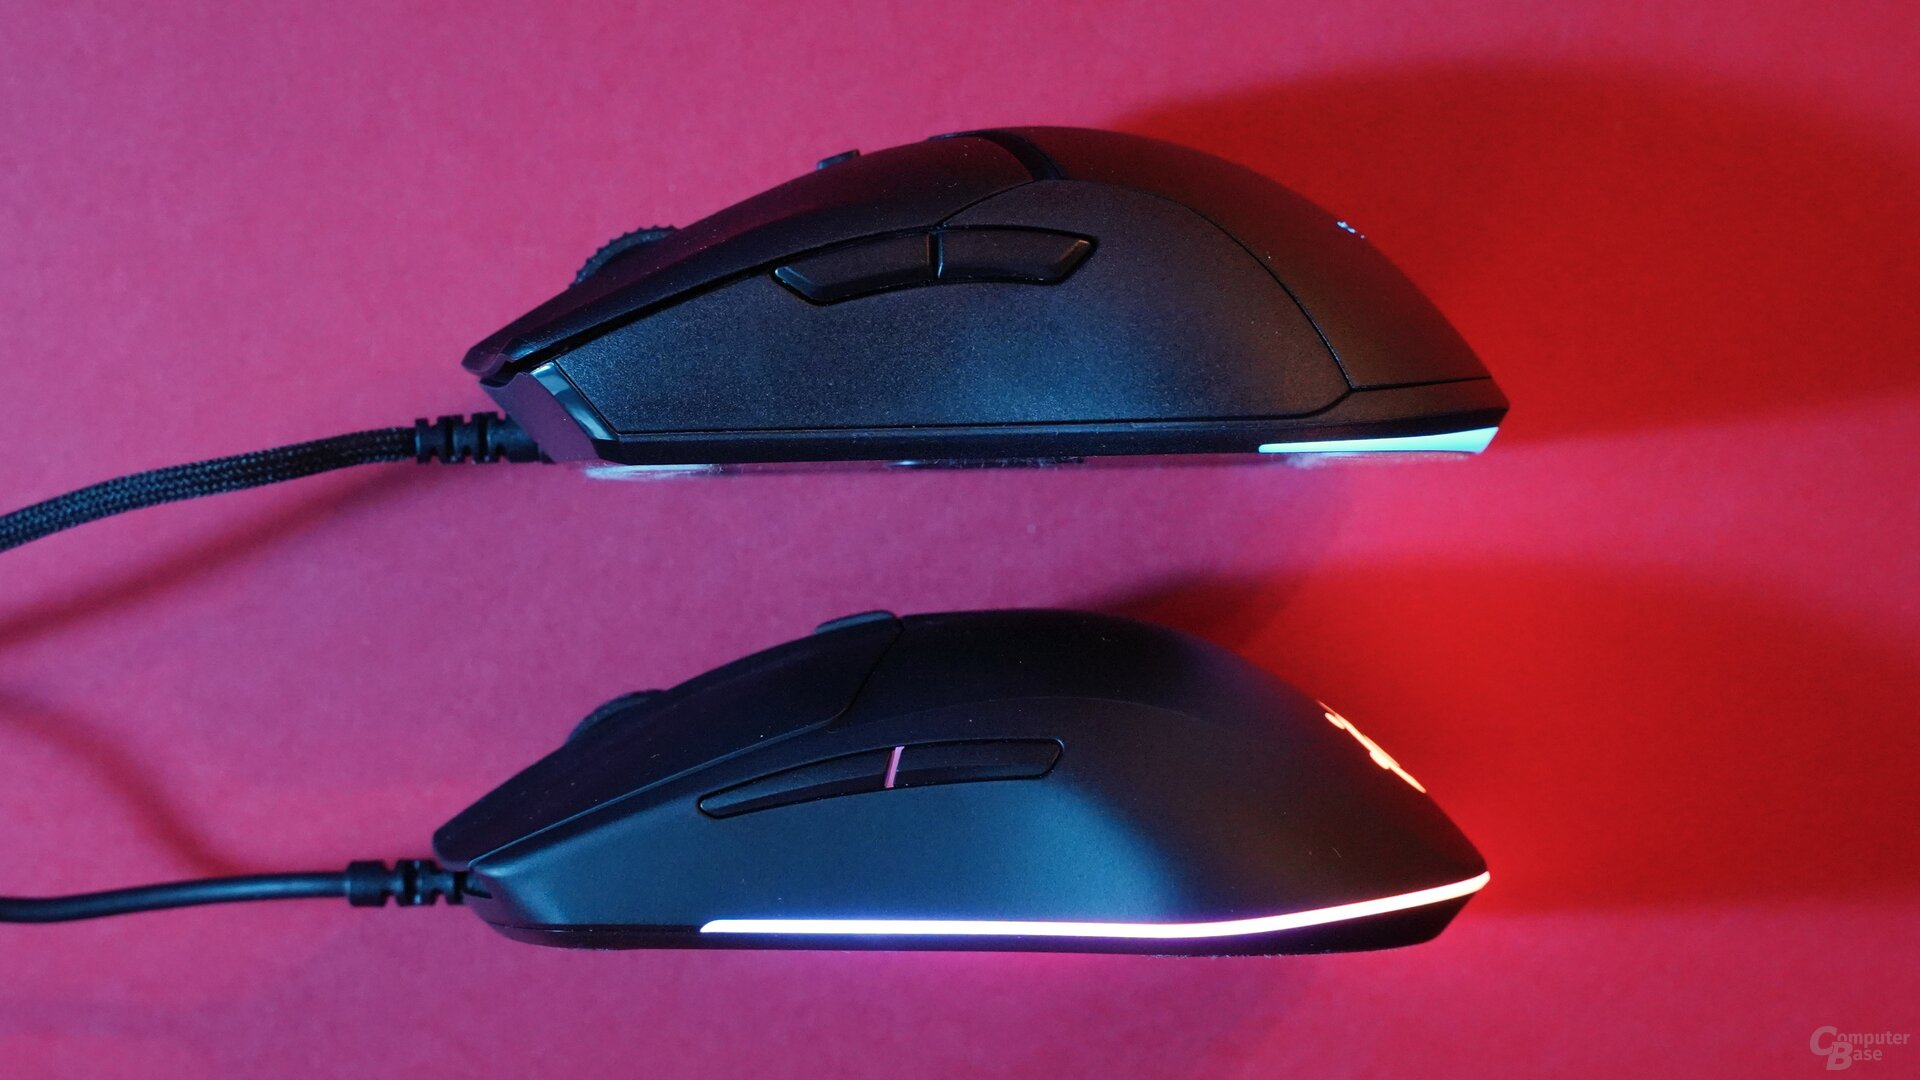 Razer Viper Mini & SteelSeries Rival 3